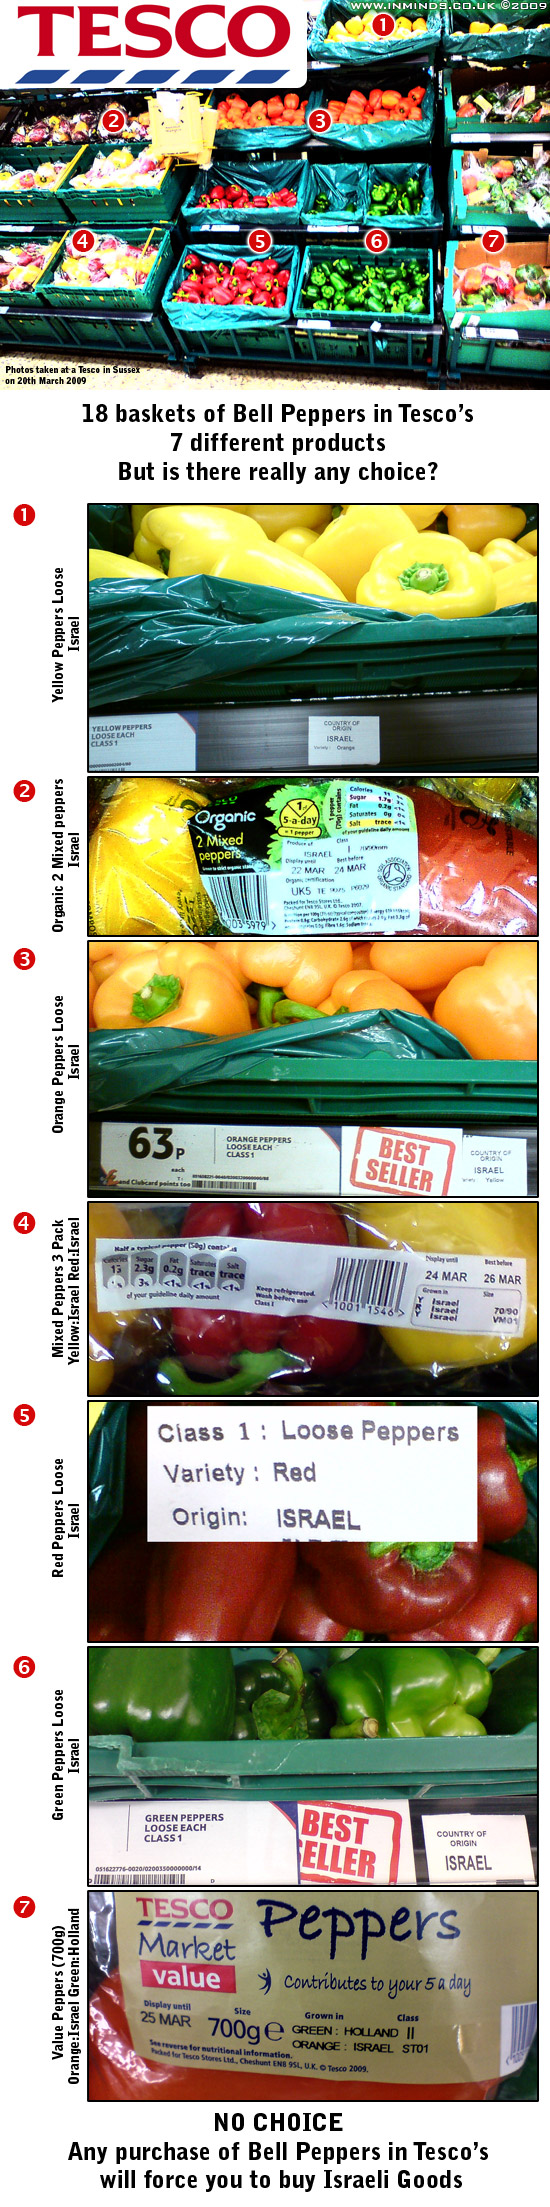 tesco-israeli-peppers-no-choice.jpg